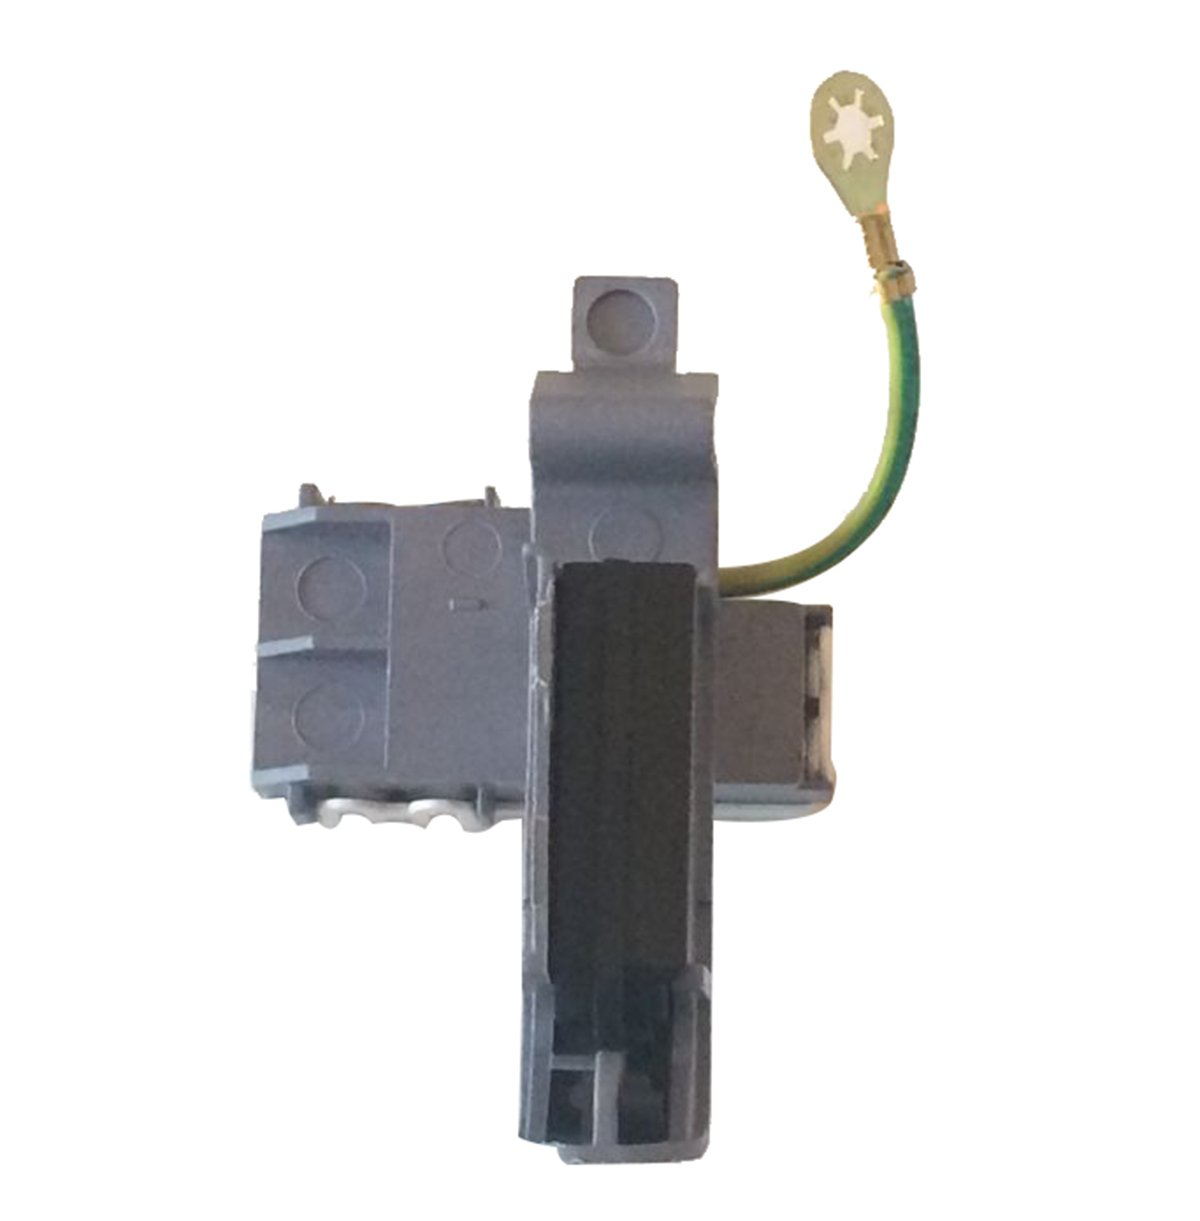 Lonye 3 Pin 8318084 Washer Lid Switch For Whirlpool Maytag 4 Wire Harness Kenmore Kitchenaid Roper Estate Sears Replace Wp8318084 1018522 Ap3180933